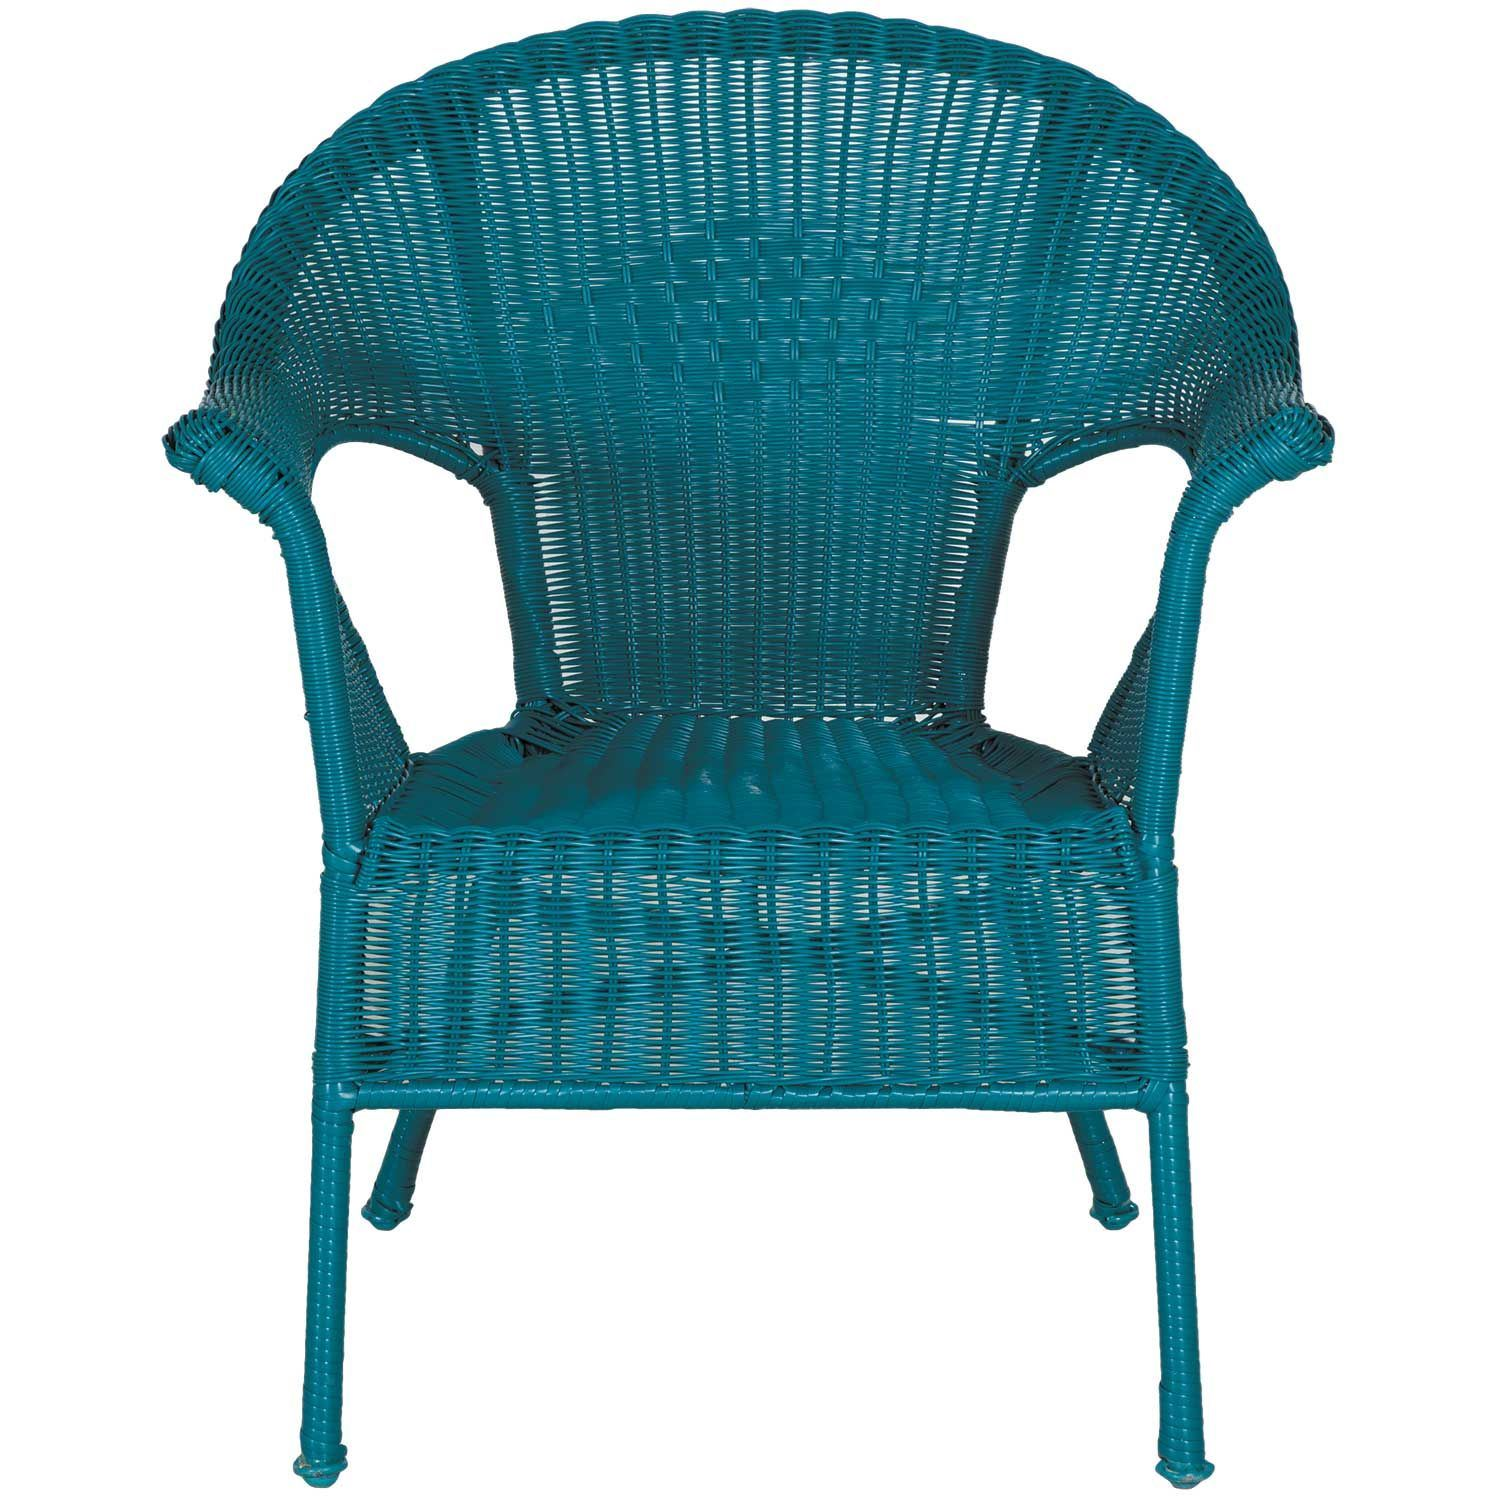 Woven wicker patio furniture 12 stylish outdoor furniture for Difference between rattan and wicker furniture